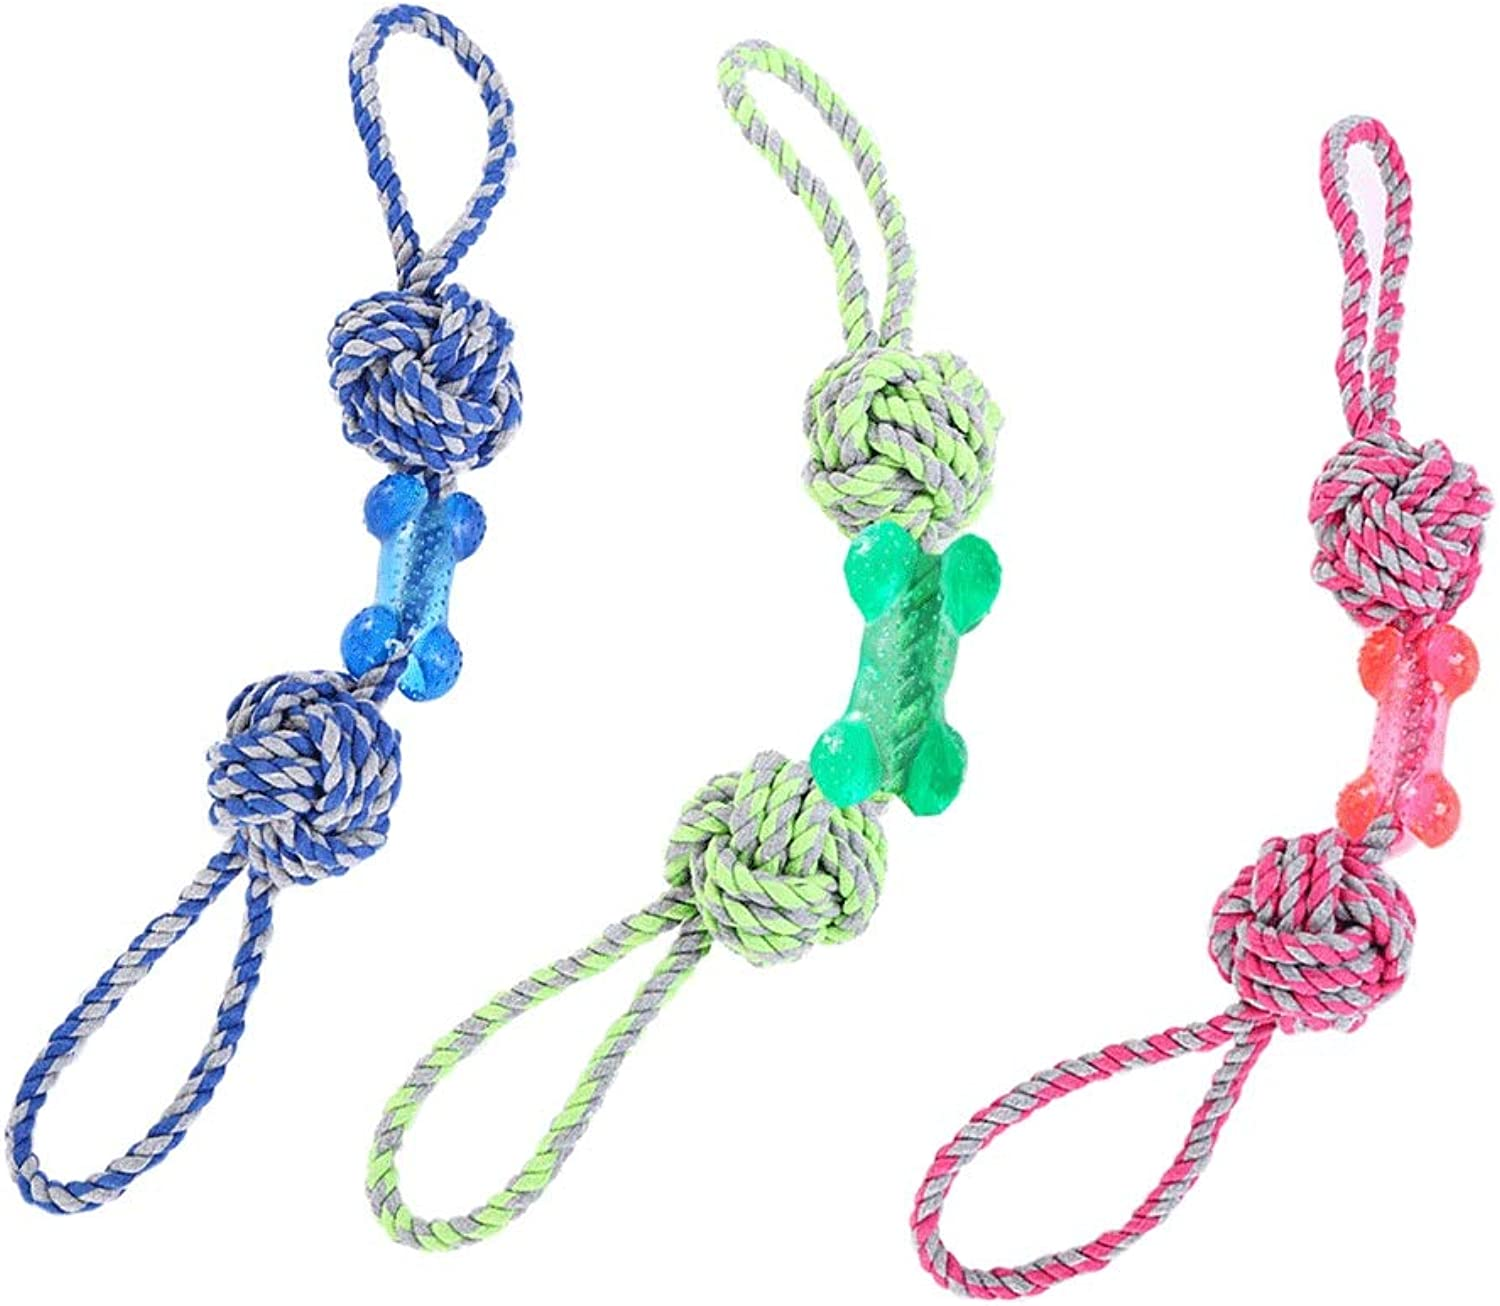 JIANXIN Pet Toys, Cotton Rope Interactive Dog Bite Toys, Molar Teeth, Suitable for Small and Medium Dogs, 3 Packs